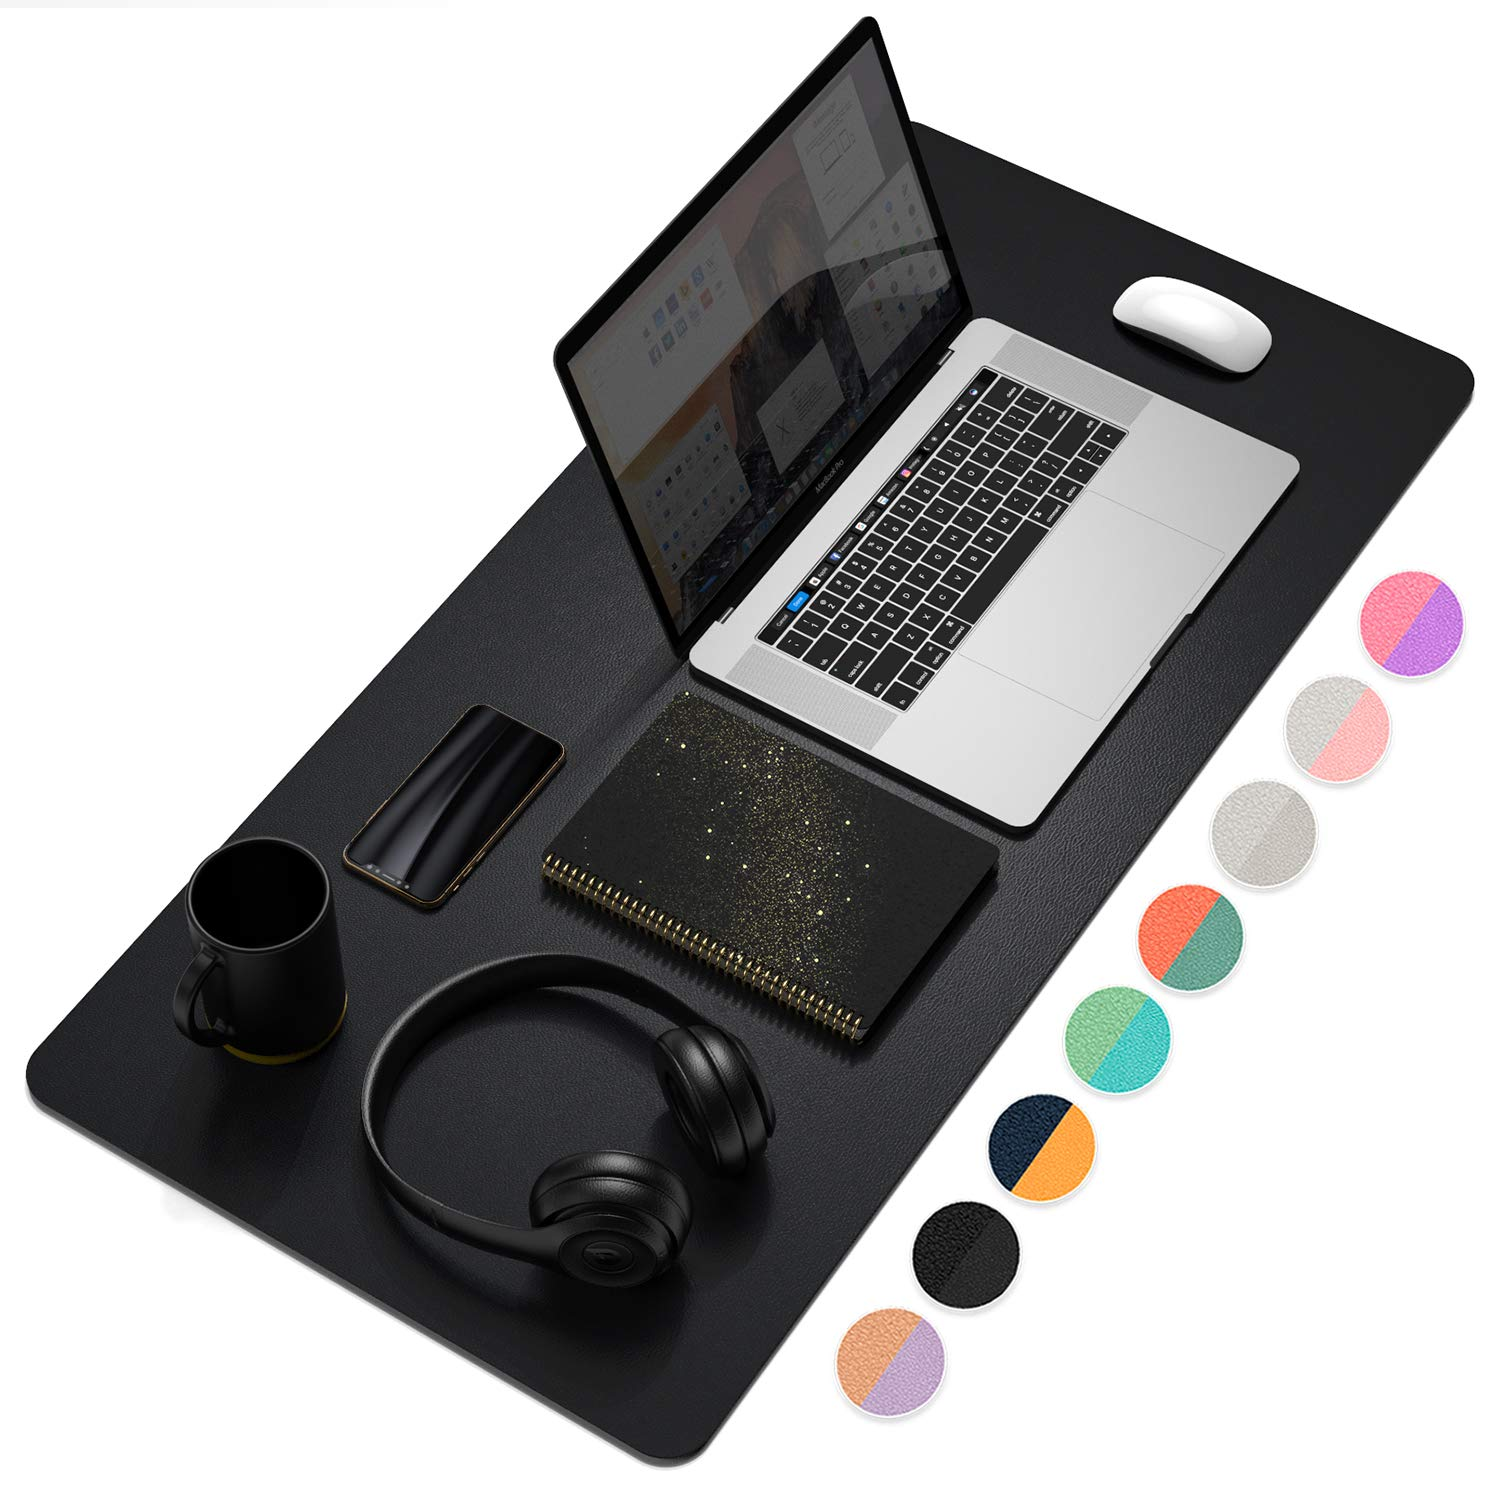 Dual-Sided Multifunctional Desk Pad, Waterproof Large Mouse Pad, Leather Desk Wrting Mat Desk Protector